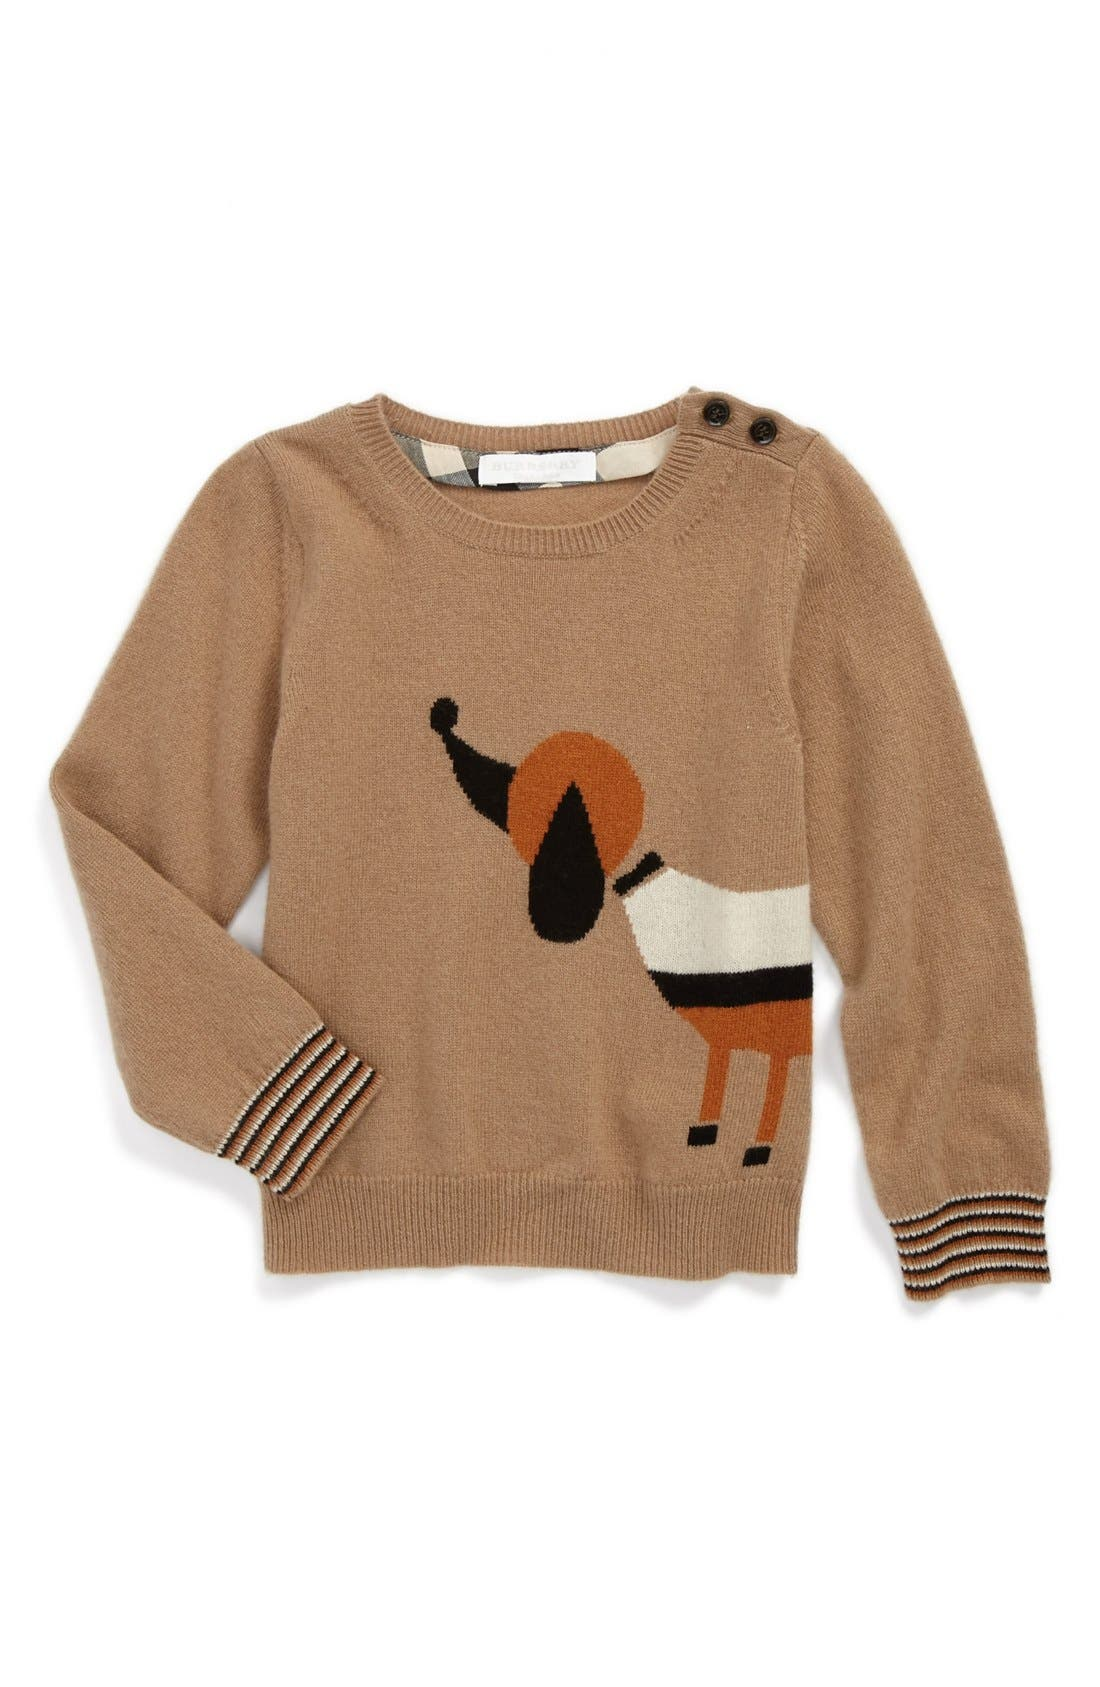 Alternate Image 1 Selected - Burberry Dog Sweater (Toddler Girls)